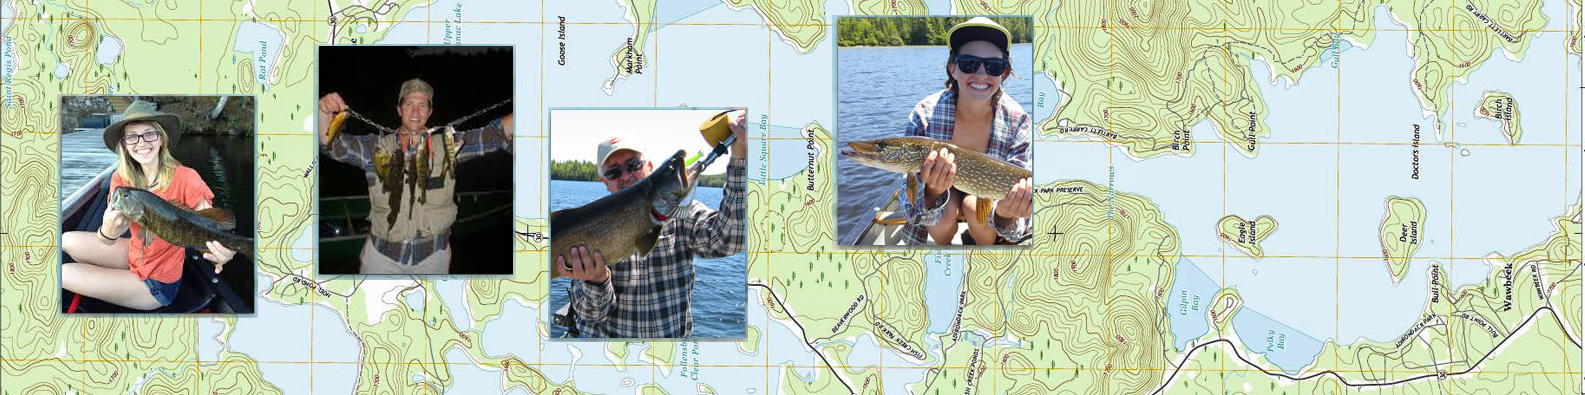 Lake map and photos of fishermen and women on Upper Saranac Lake